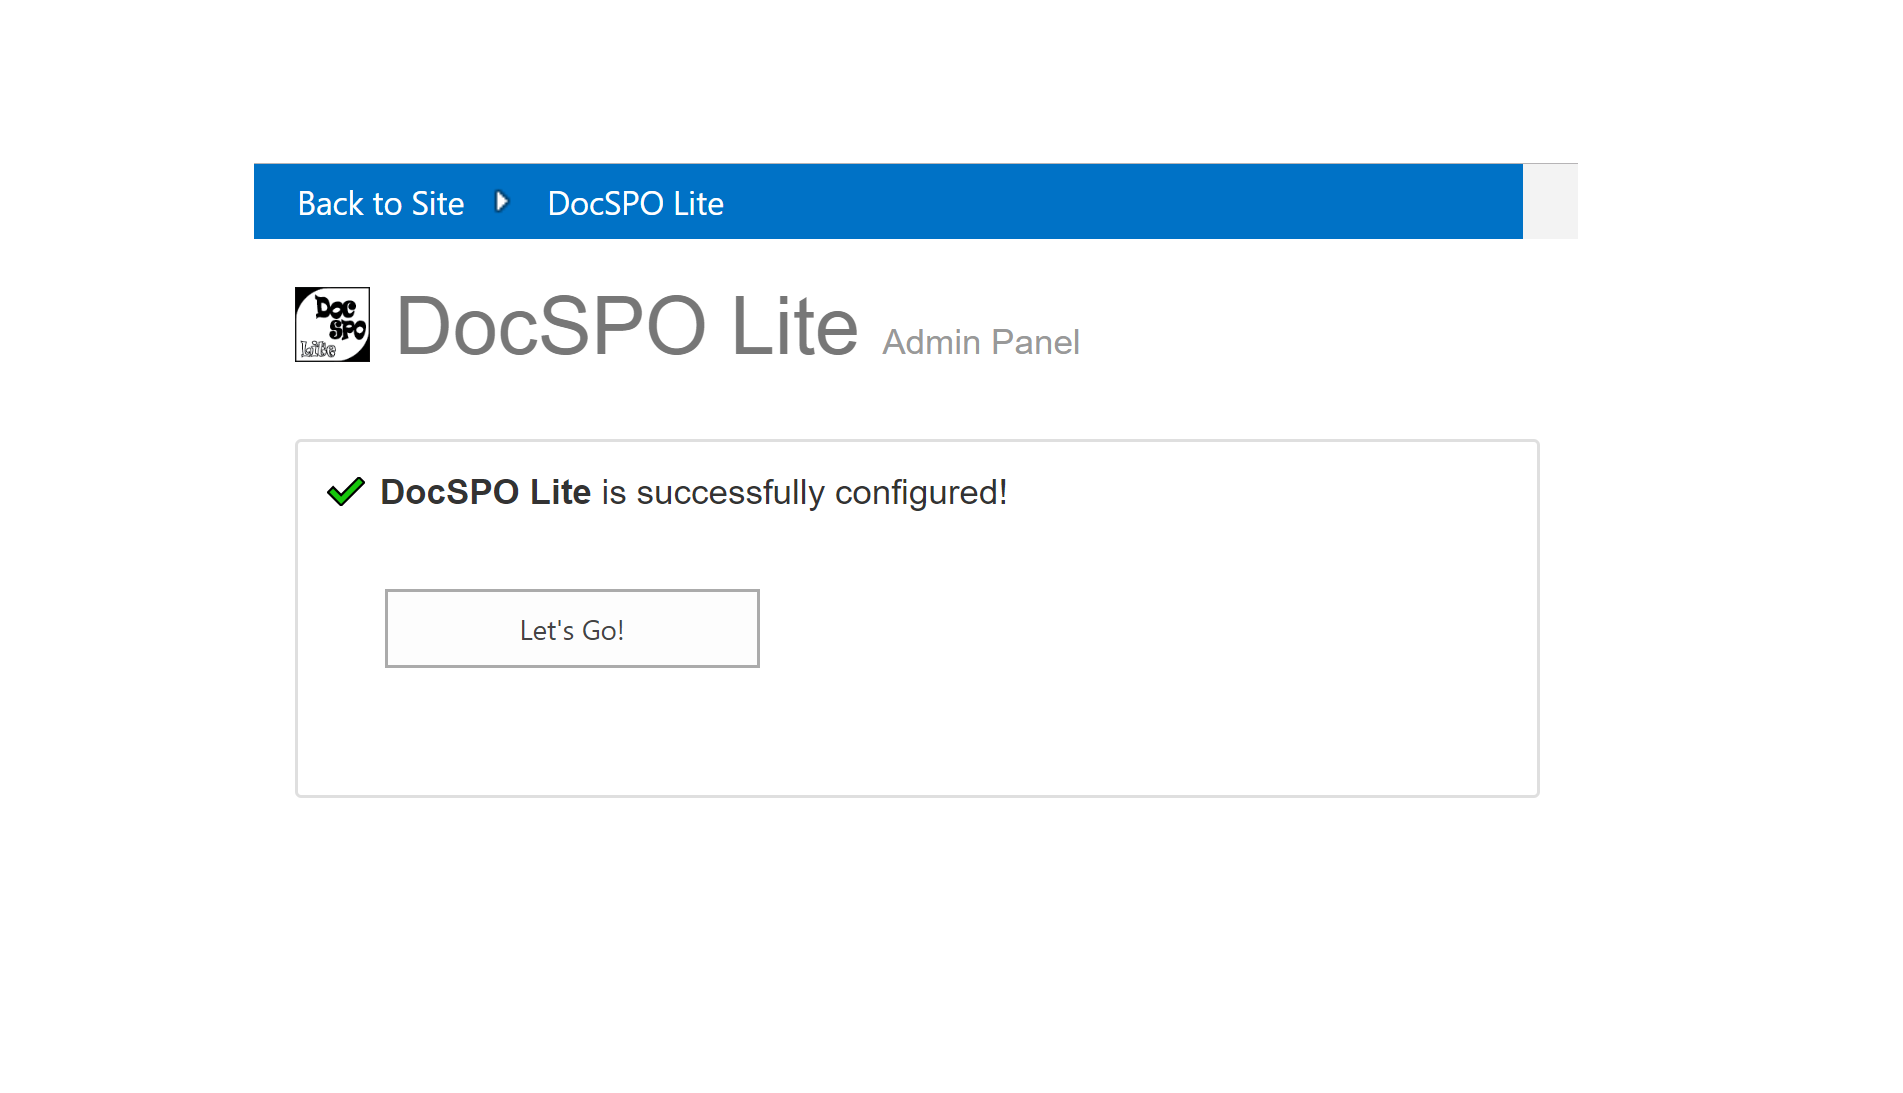 DocSPO Lite is ready to use!